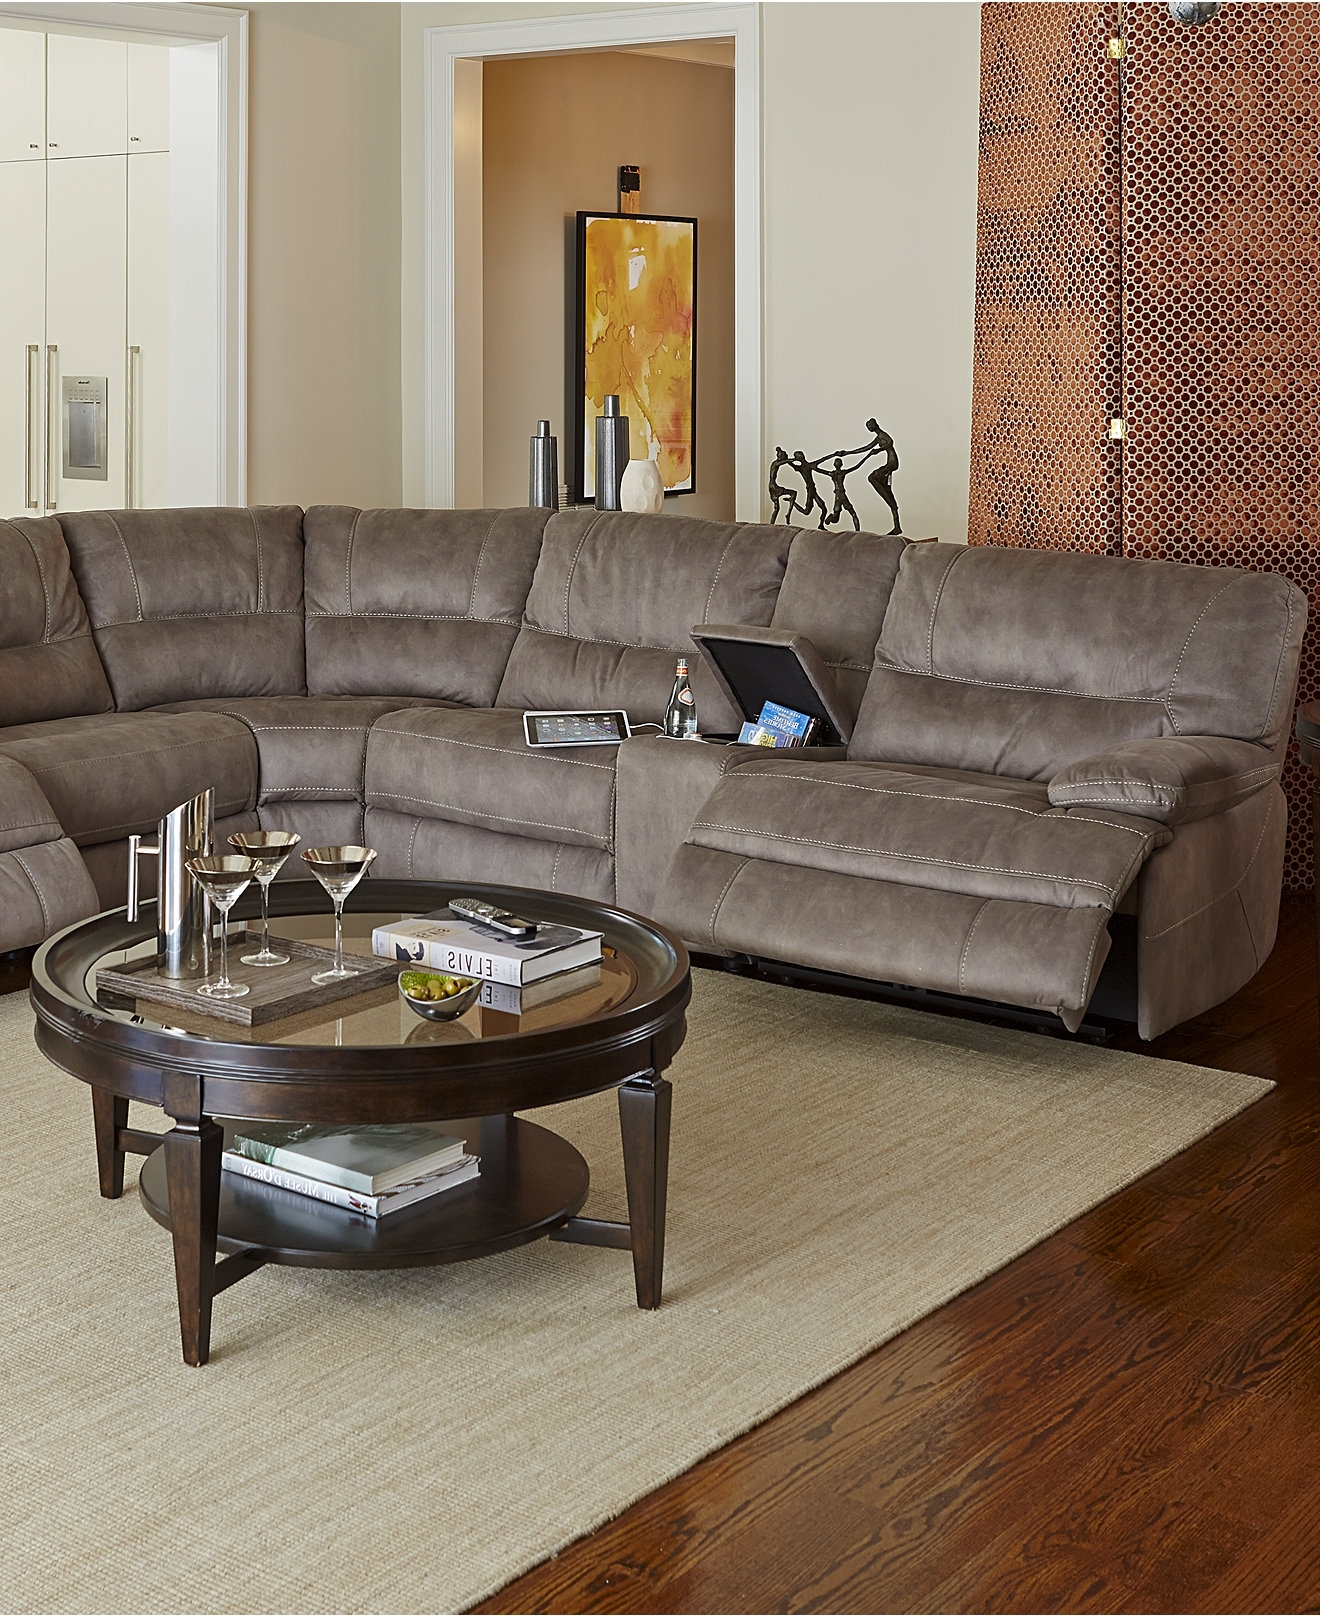 Elliot Fabric Microfiber Sectional Sofa 3 Piece Microfiber Regarding Famous Macys Leather Sectional Sofas (View 13 of 15)